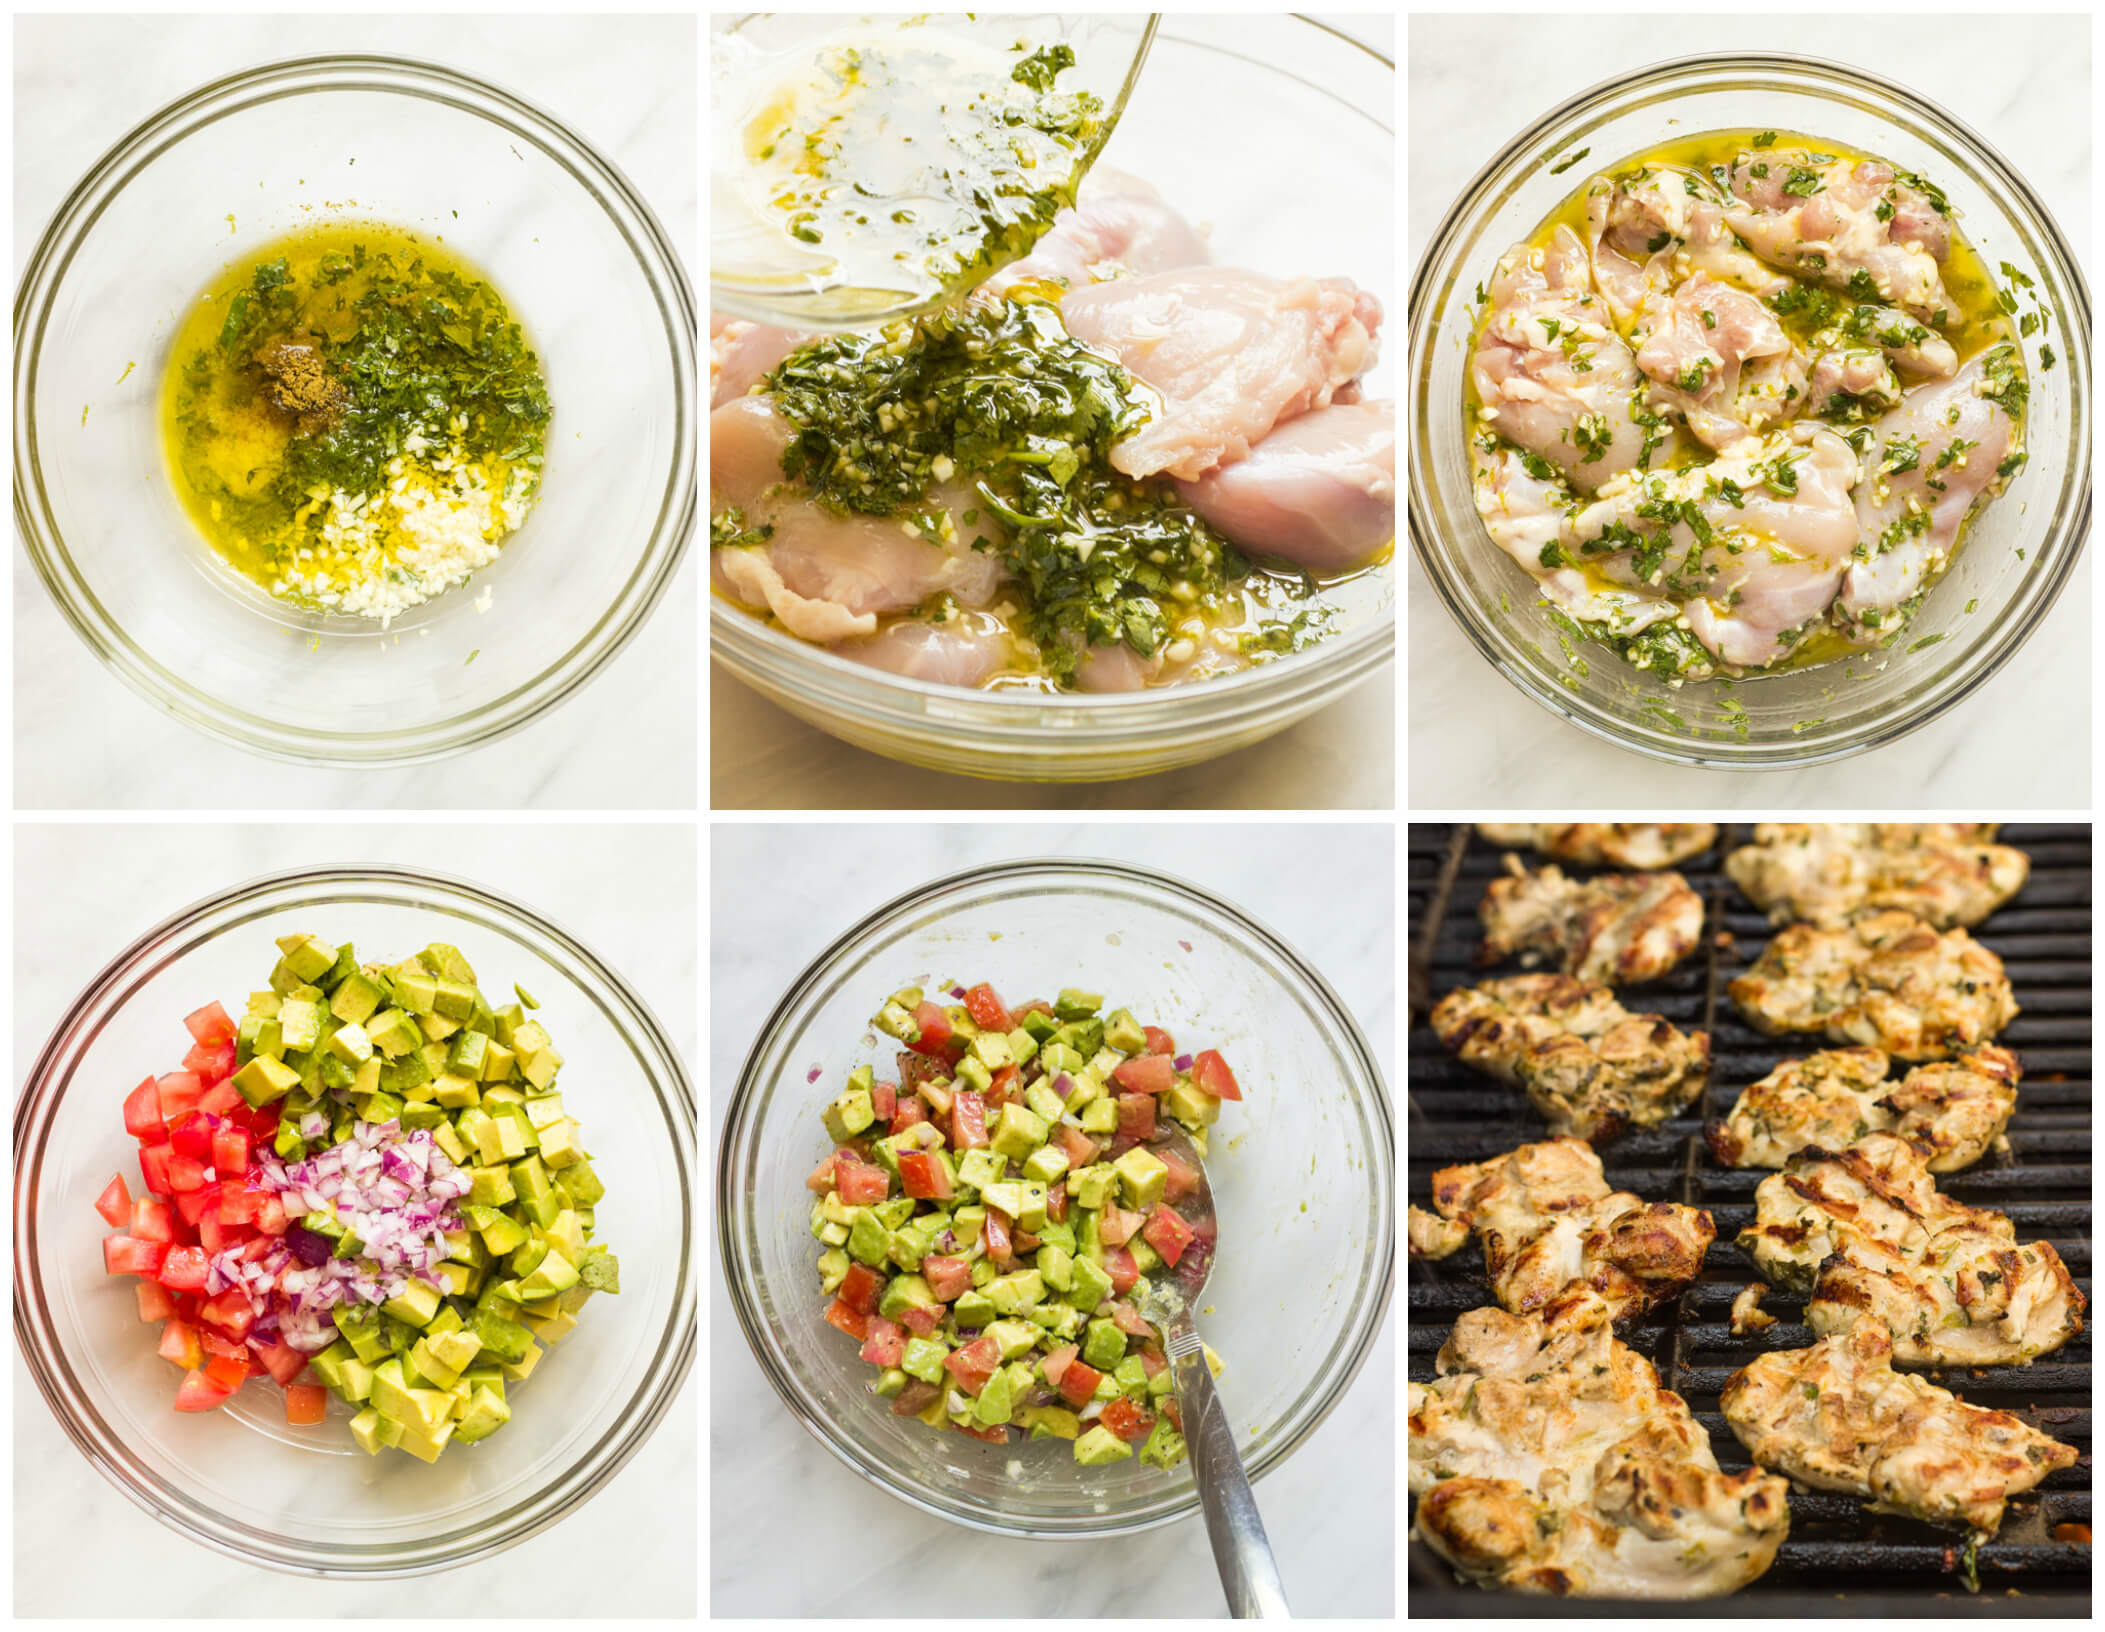 Step by step on how to make cilantro lime chicken recipe